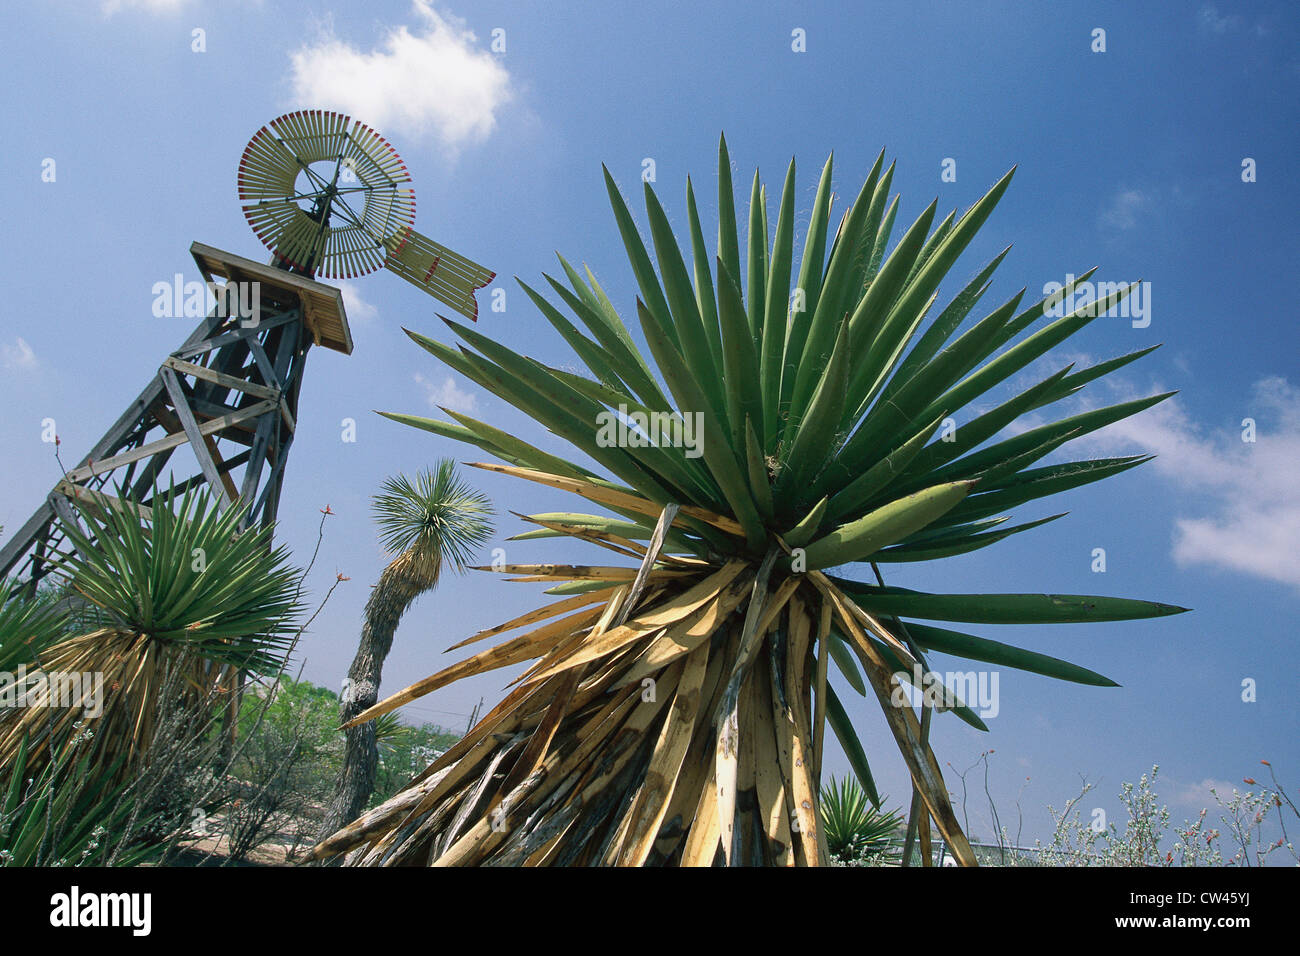 Shrub with windmill in background, Langtry, Texas Stock Photo